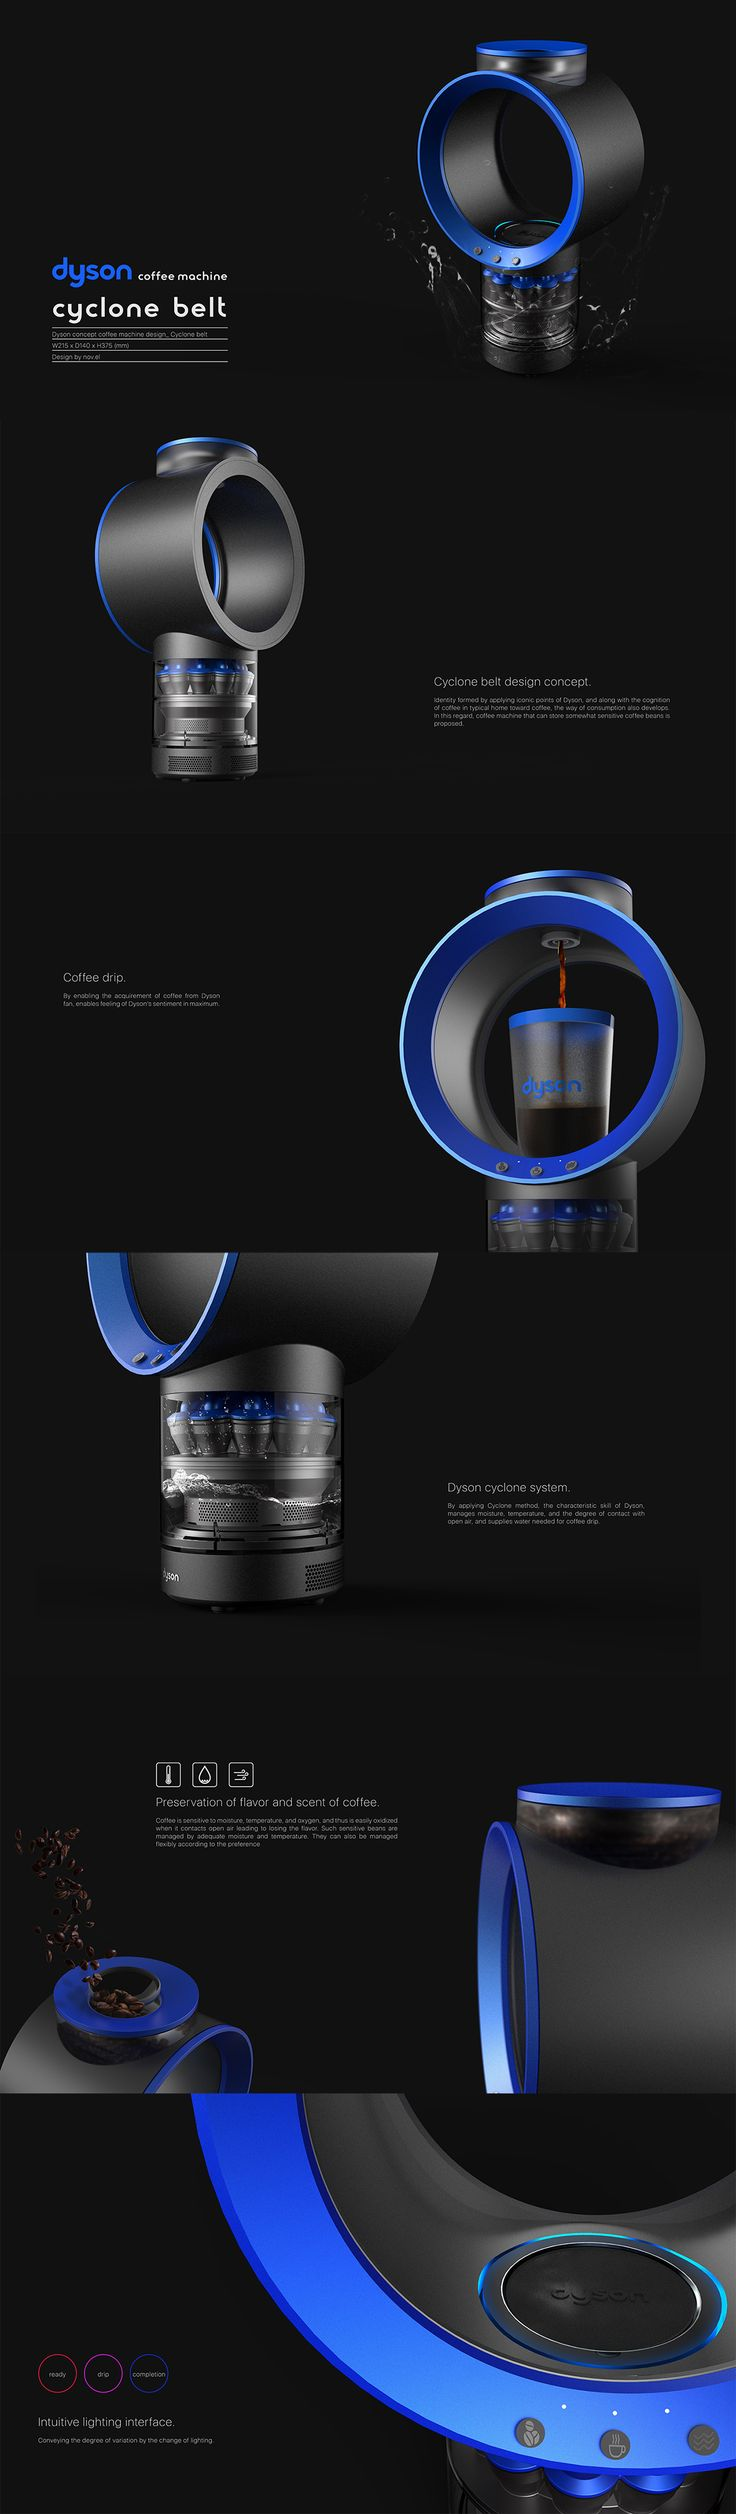 Product design / Industrial design / 제품디자인 / 산업디자인 / coffee machine / dyson…